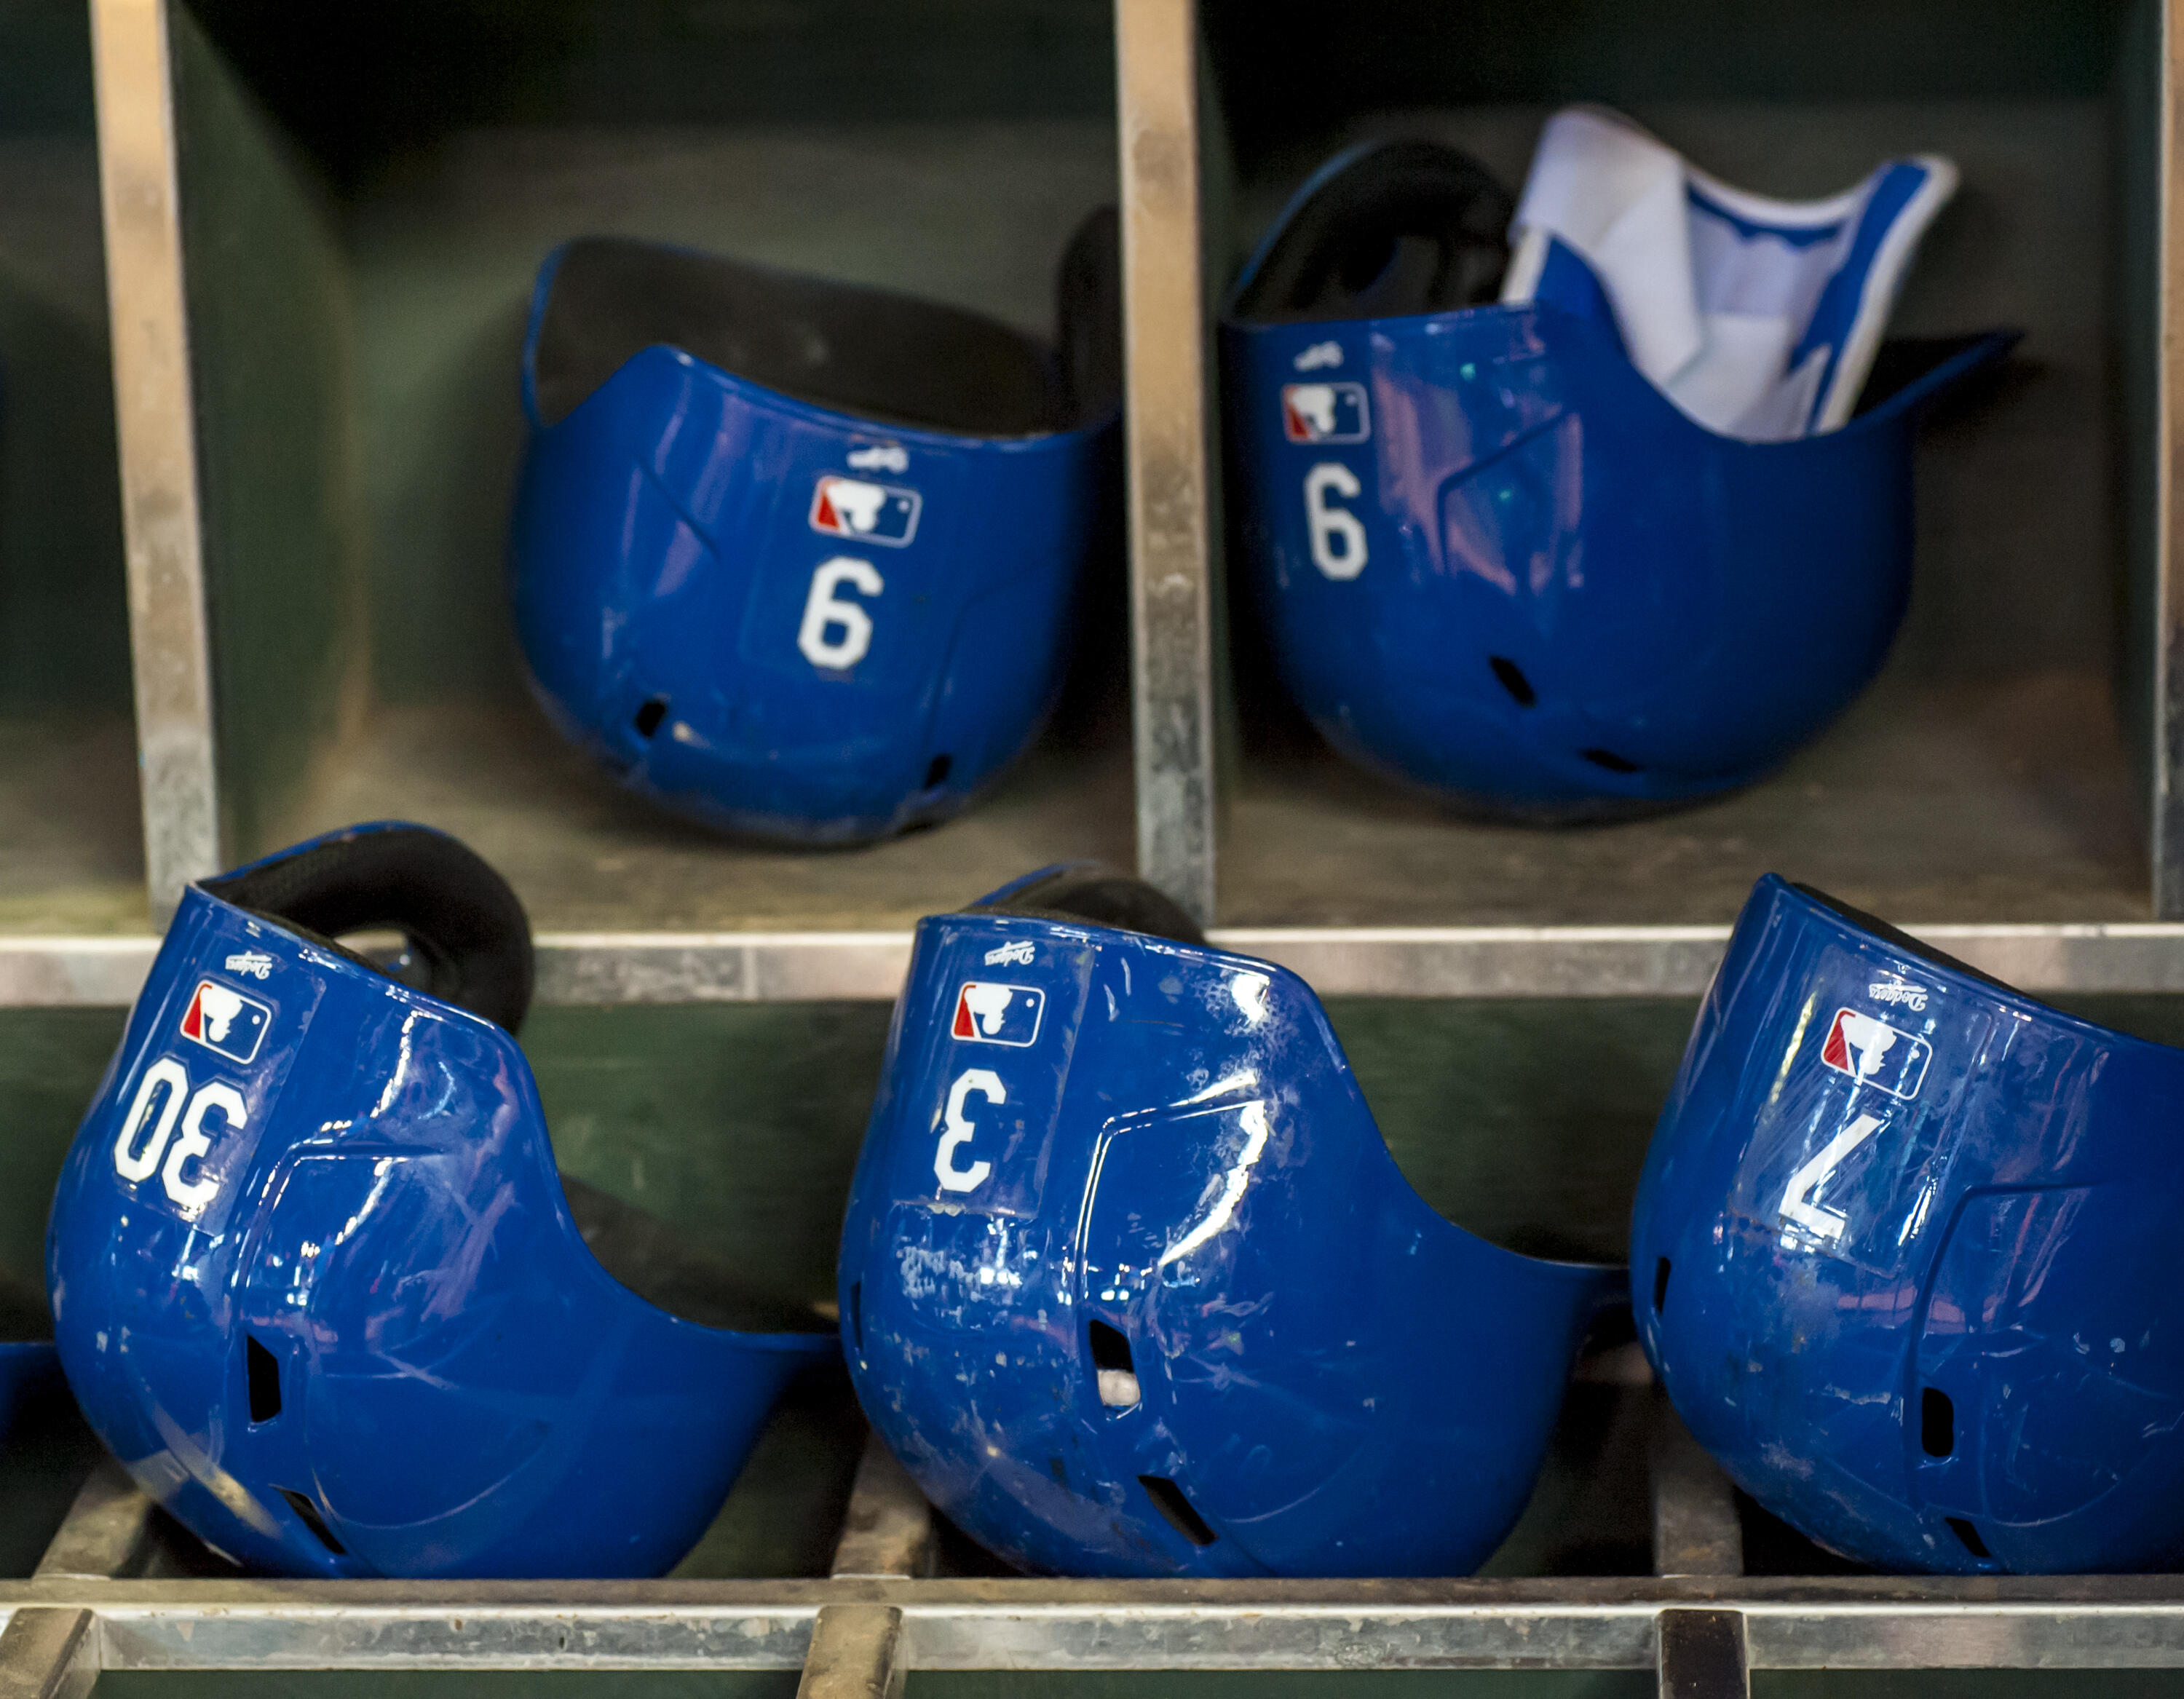 PHOENIX, AZ - SEPTEMBER 13: Helmet rack of the Los Angeles Dodgers before a MLB game against the Arizona Diamondbacks on September 13, 2015 at Chase Field in Phoenix, Arizona. (Photo by Darin Wallentine/Getty Images)